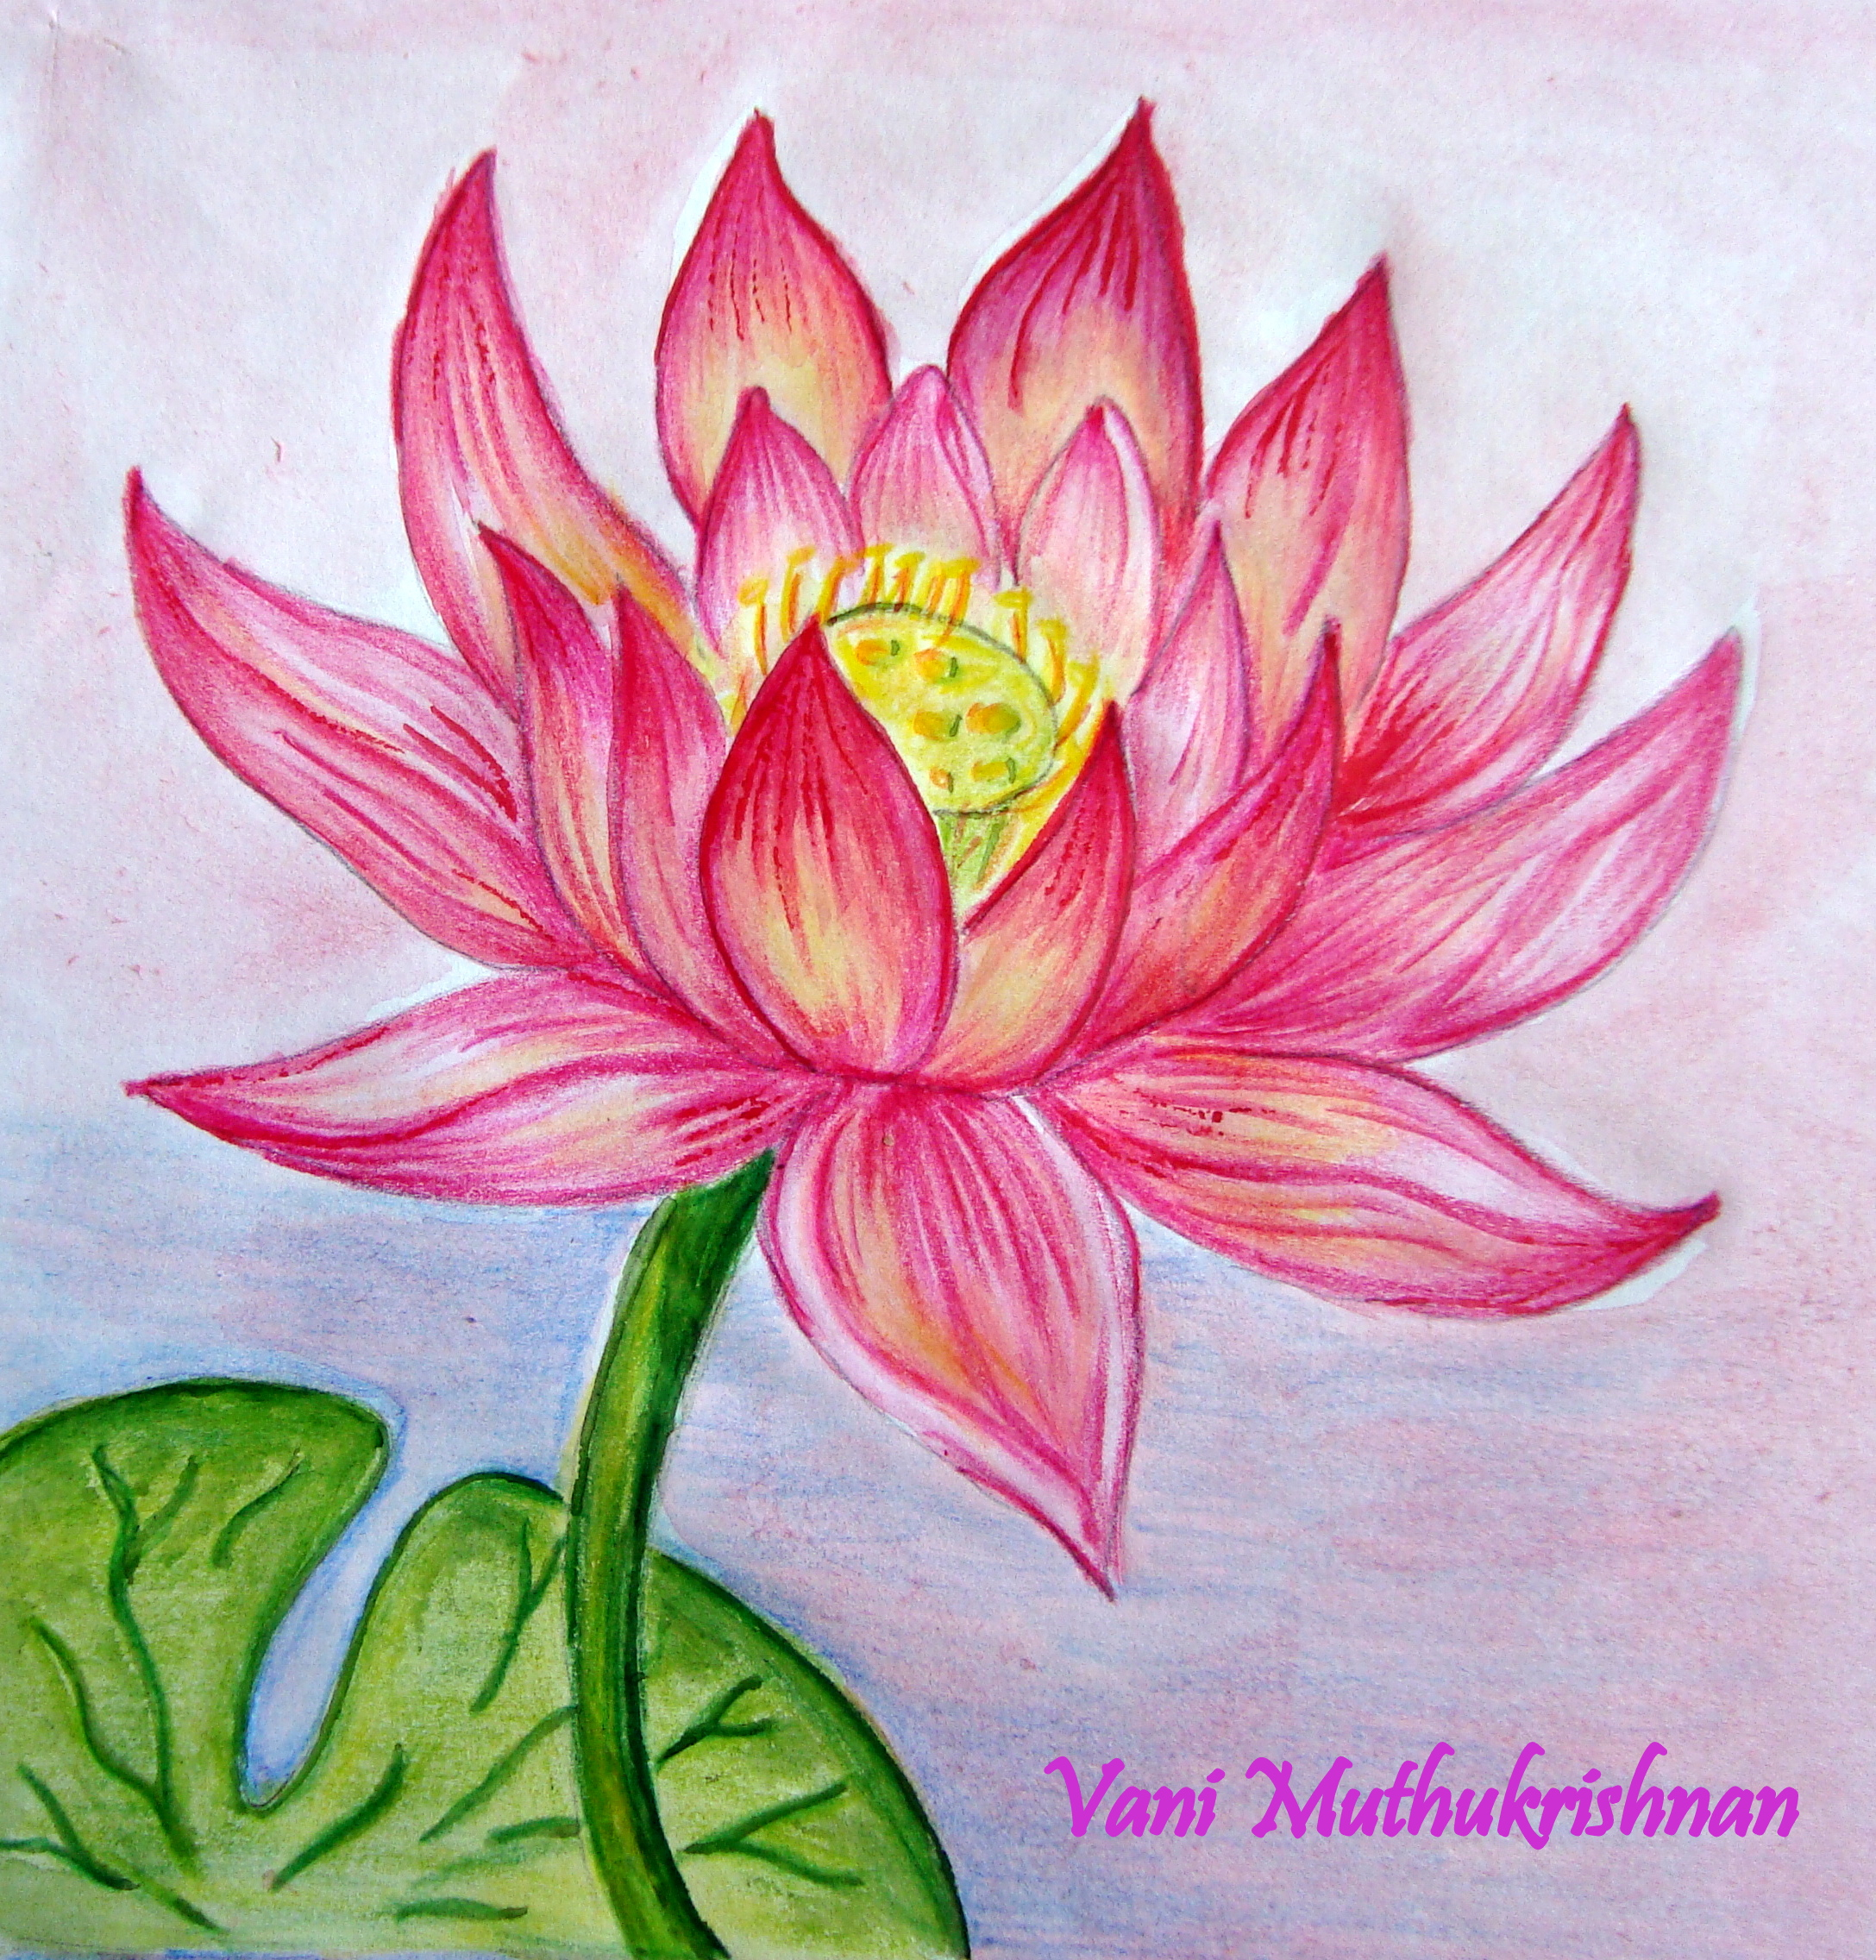 Lily pencil drawing at getdrawings free for personal use lily 2175x2272 dsc04638g 21752272 lotus pinterest art journaling izmirmasajfo Choice Image